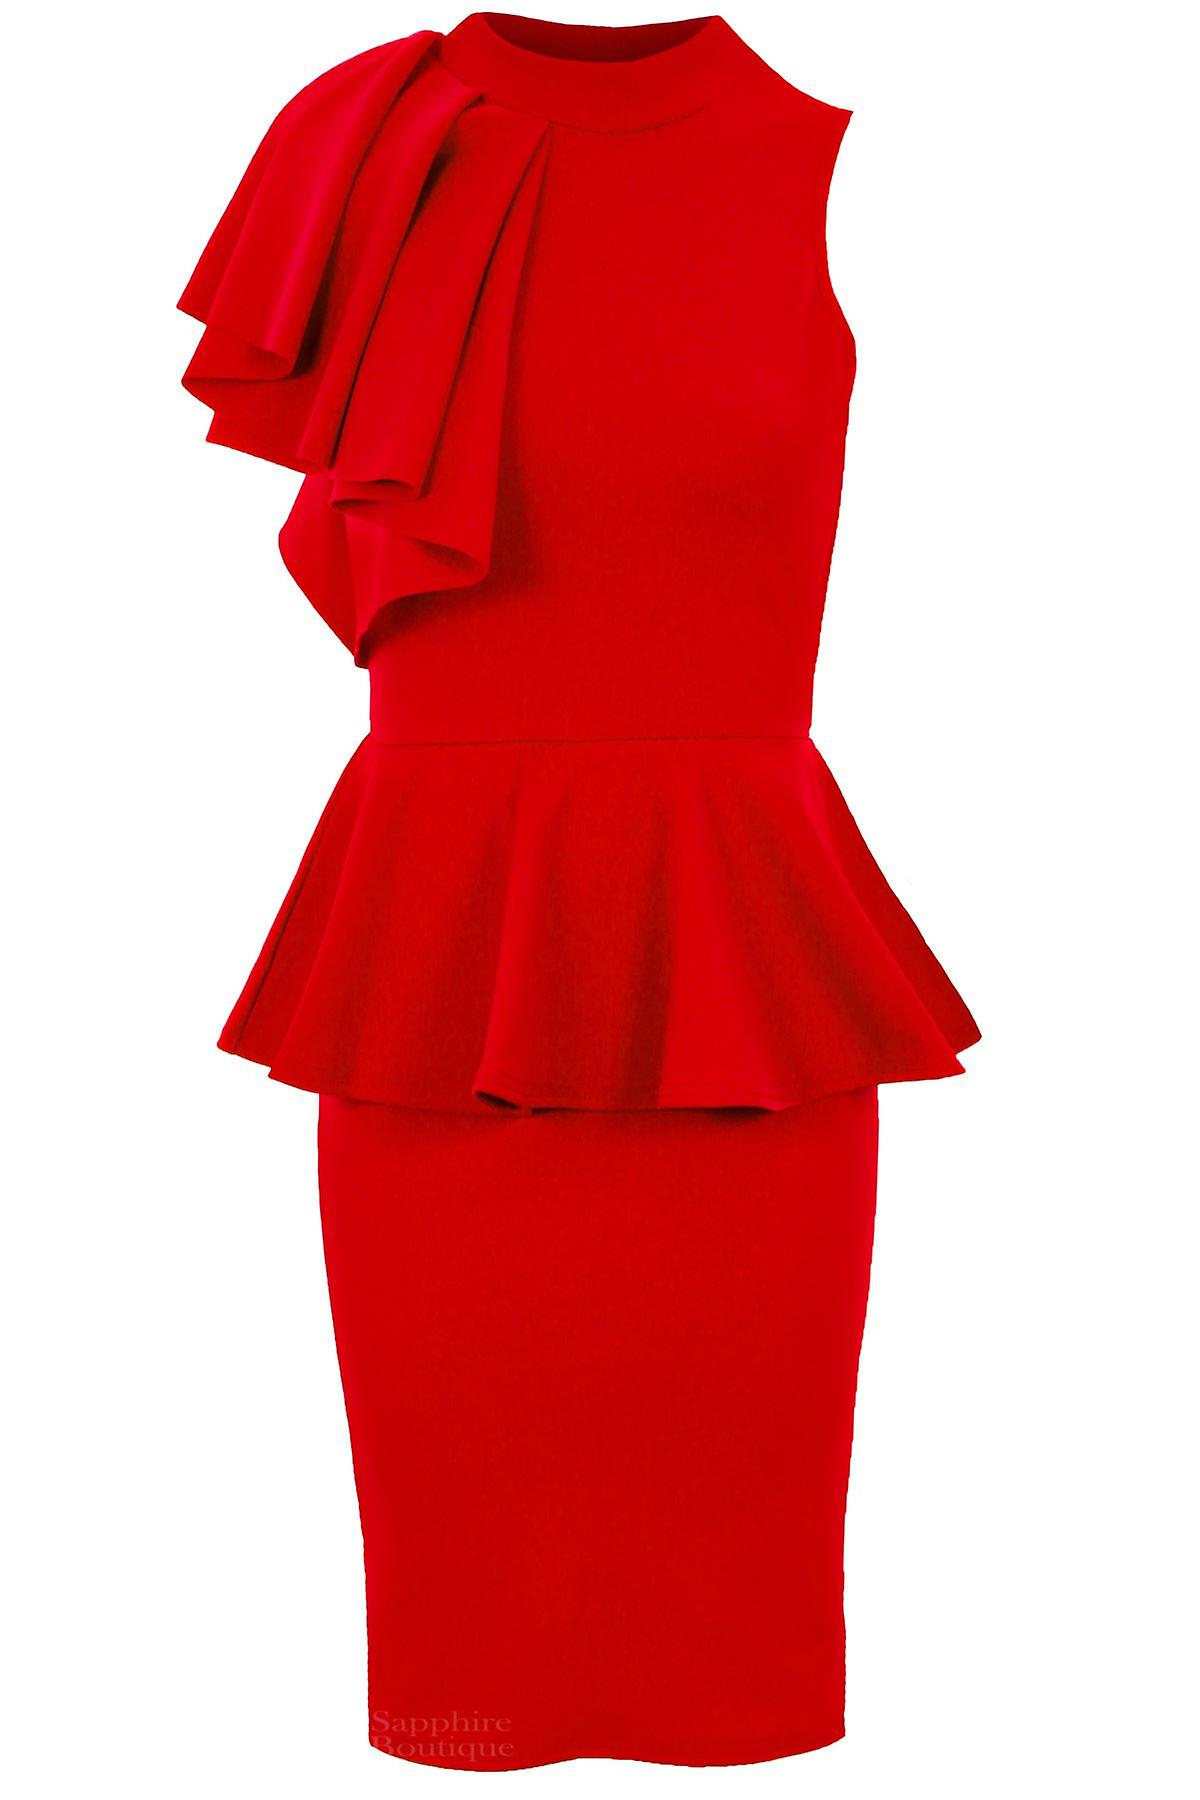 Ladies Sleeveless High Neck Frill Shoulder Women's Peplum Bodycon Party Dress